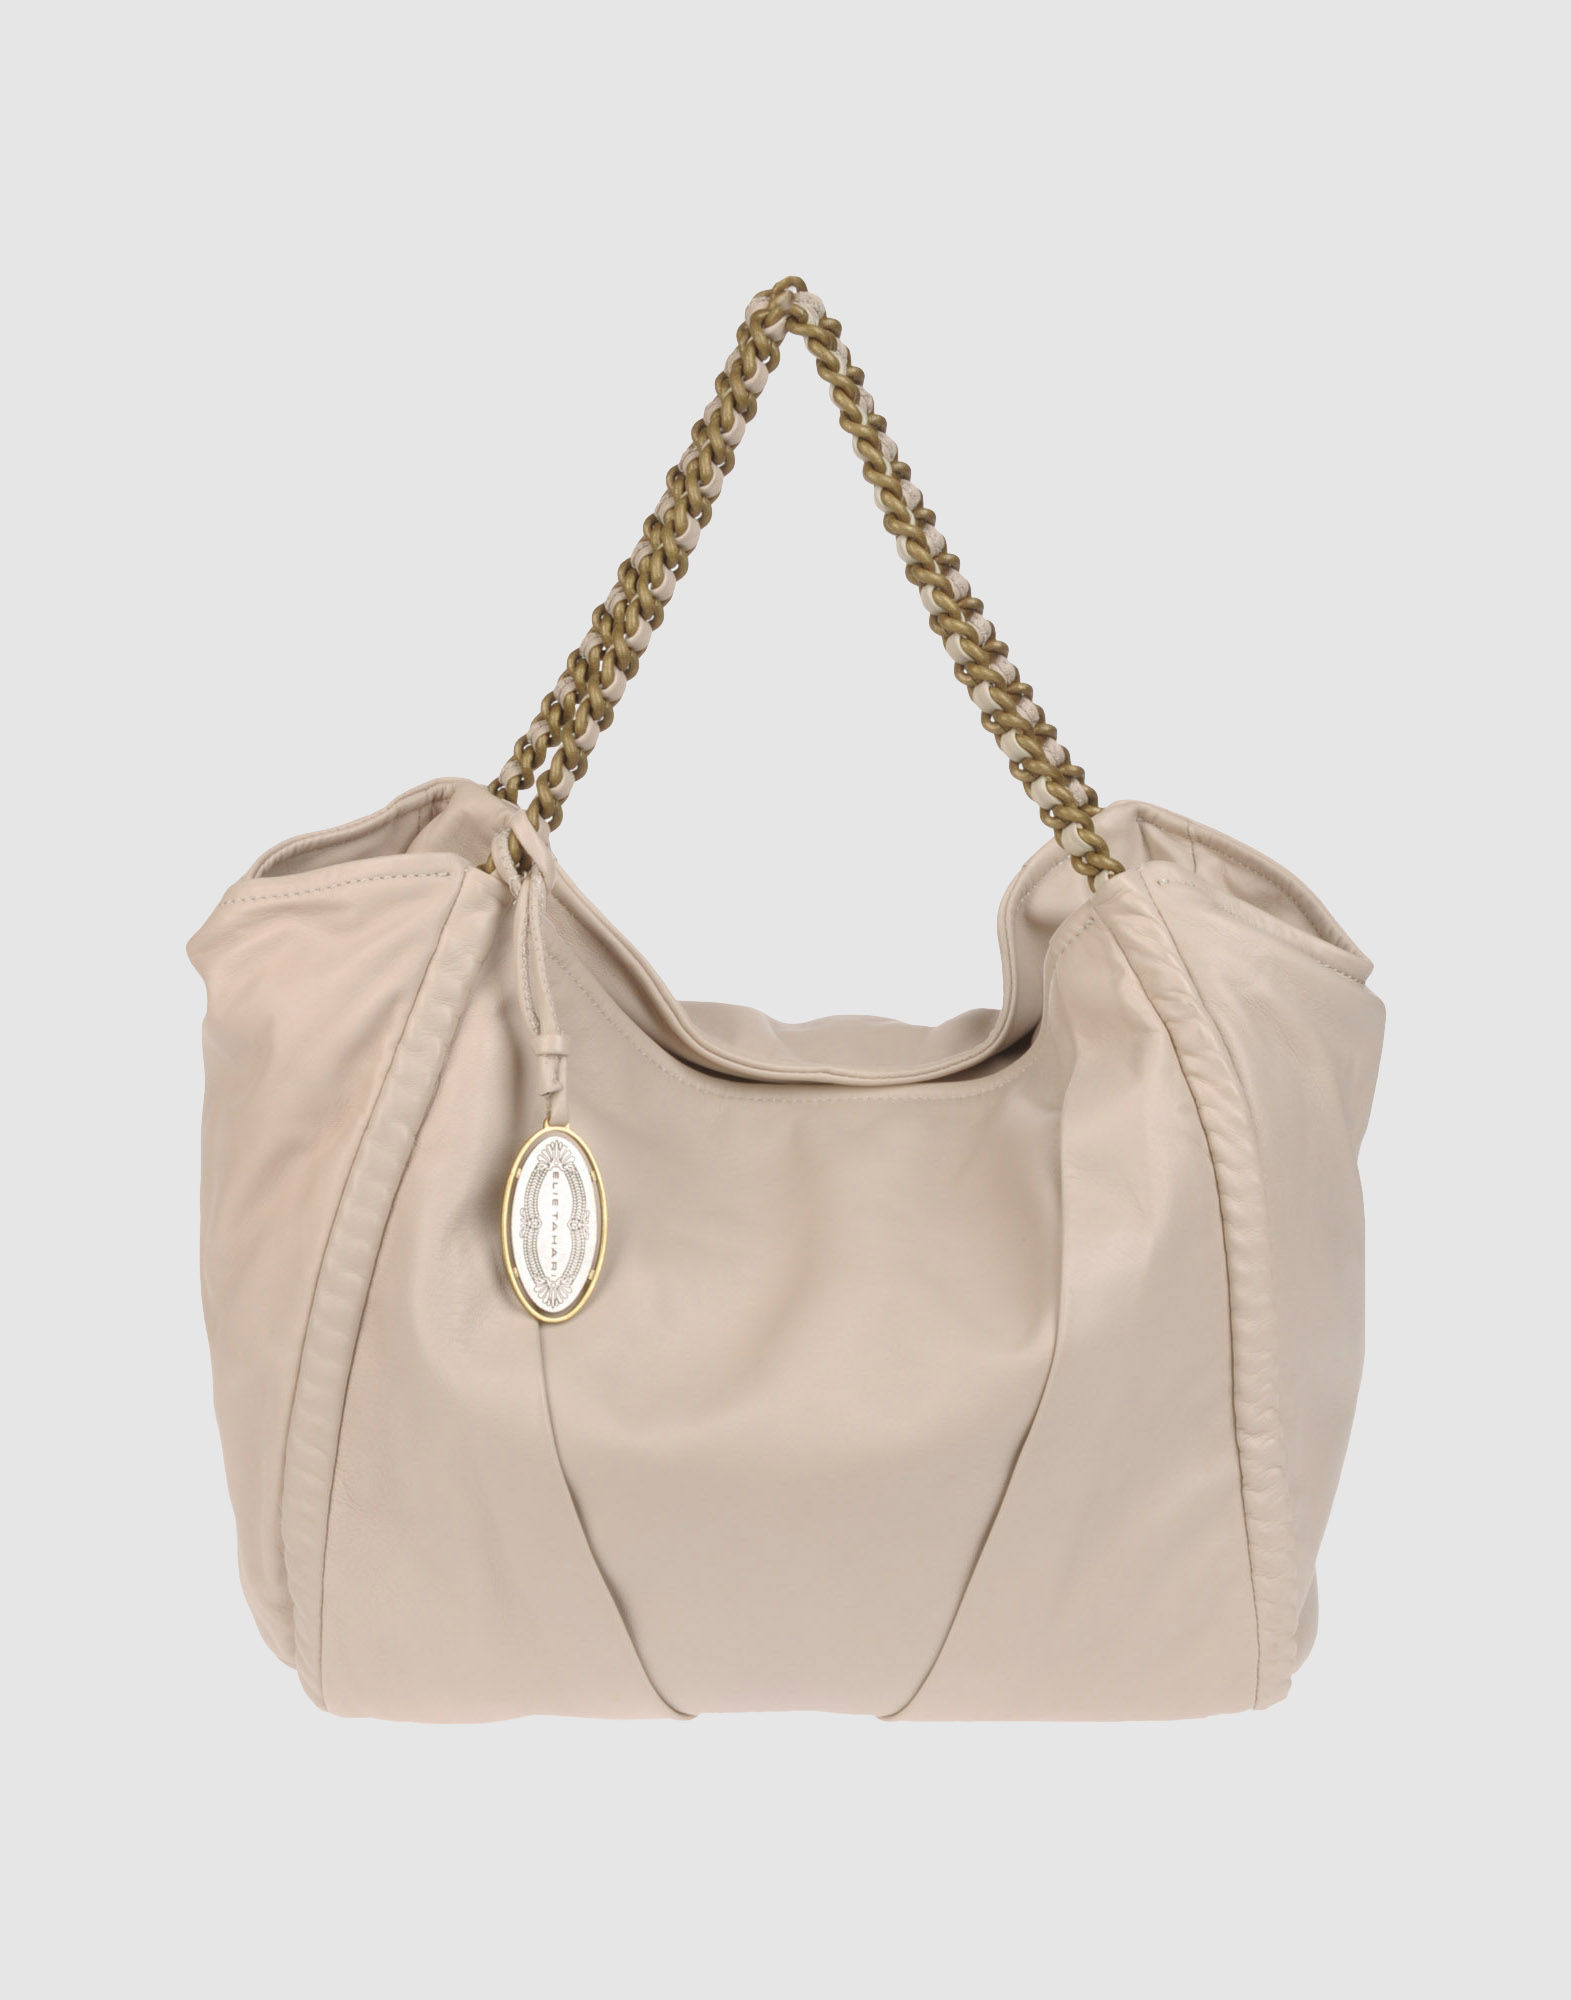 Elie Tahari Large Leather Bags In Natural Lyst